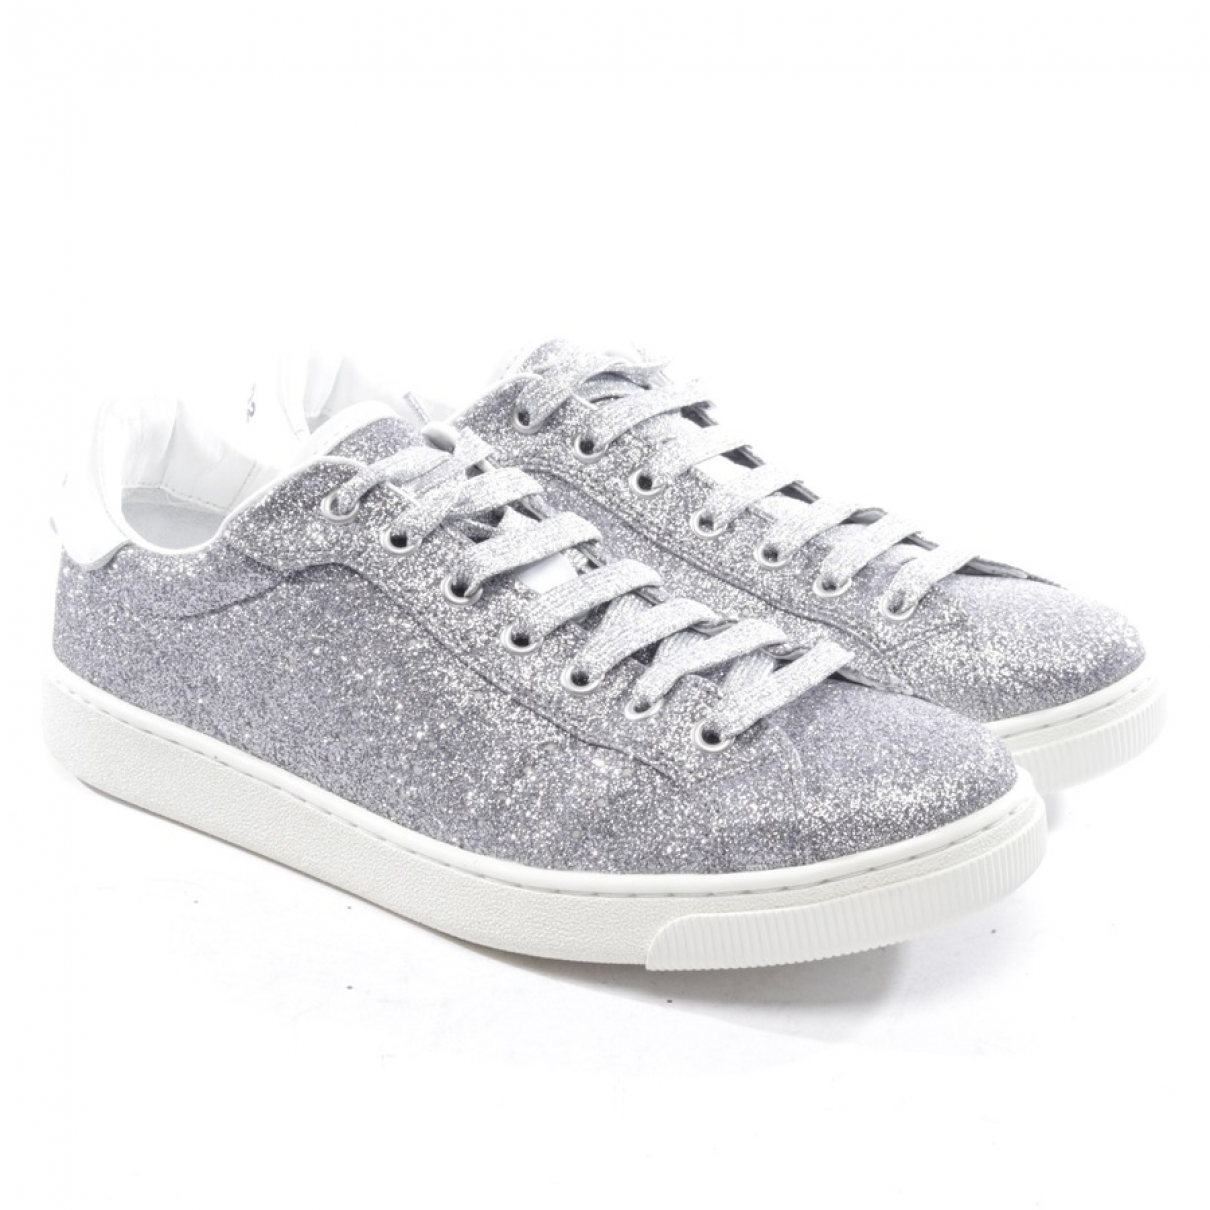 Dsquared2 - Baskets   pour femme en a paillettes - metallise